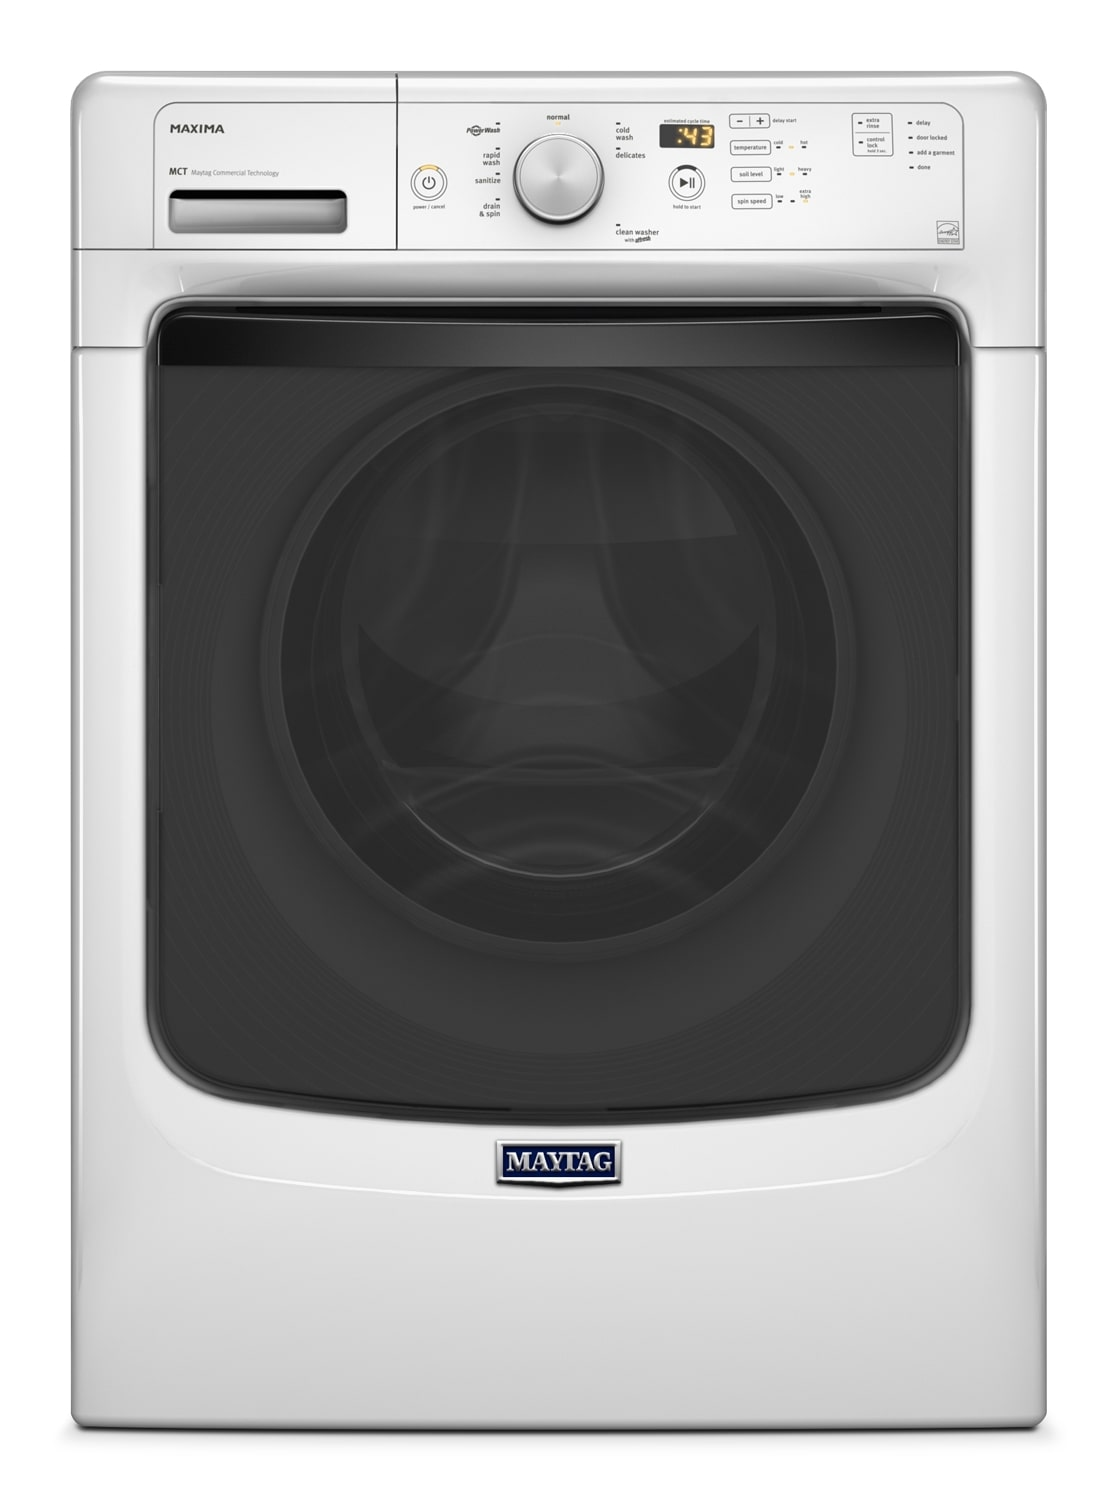 Washers and Dryers - Maytag White Front-Load Washer (4.8 Cu. Ft. IEC) - MHW3100DW